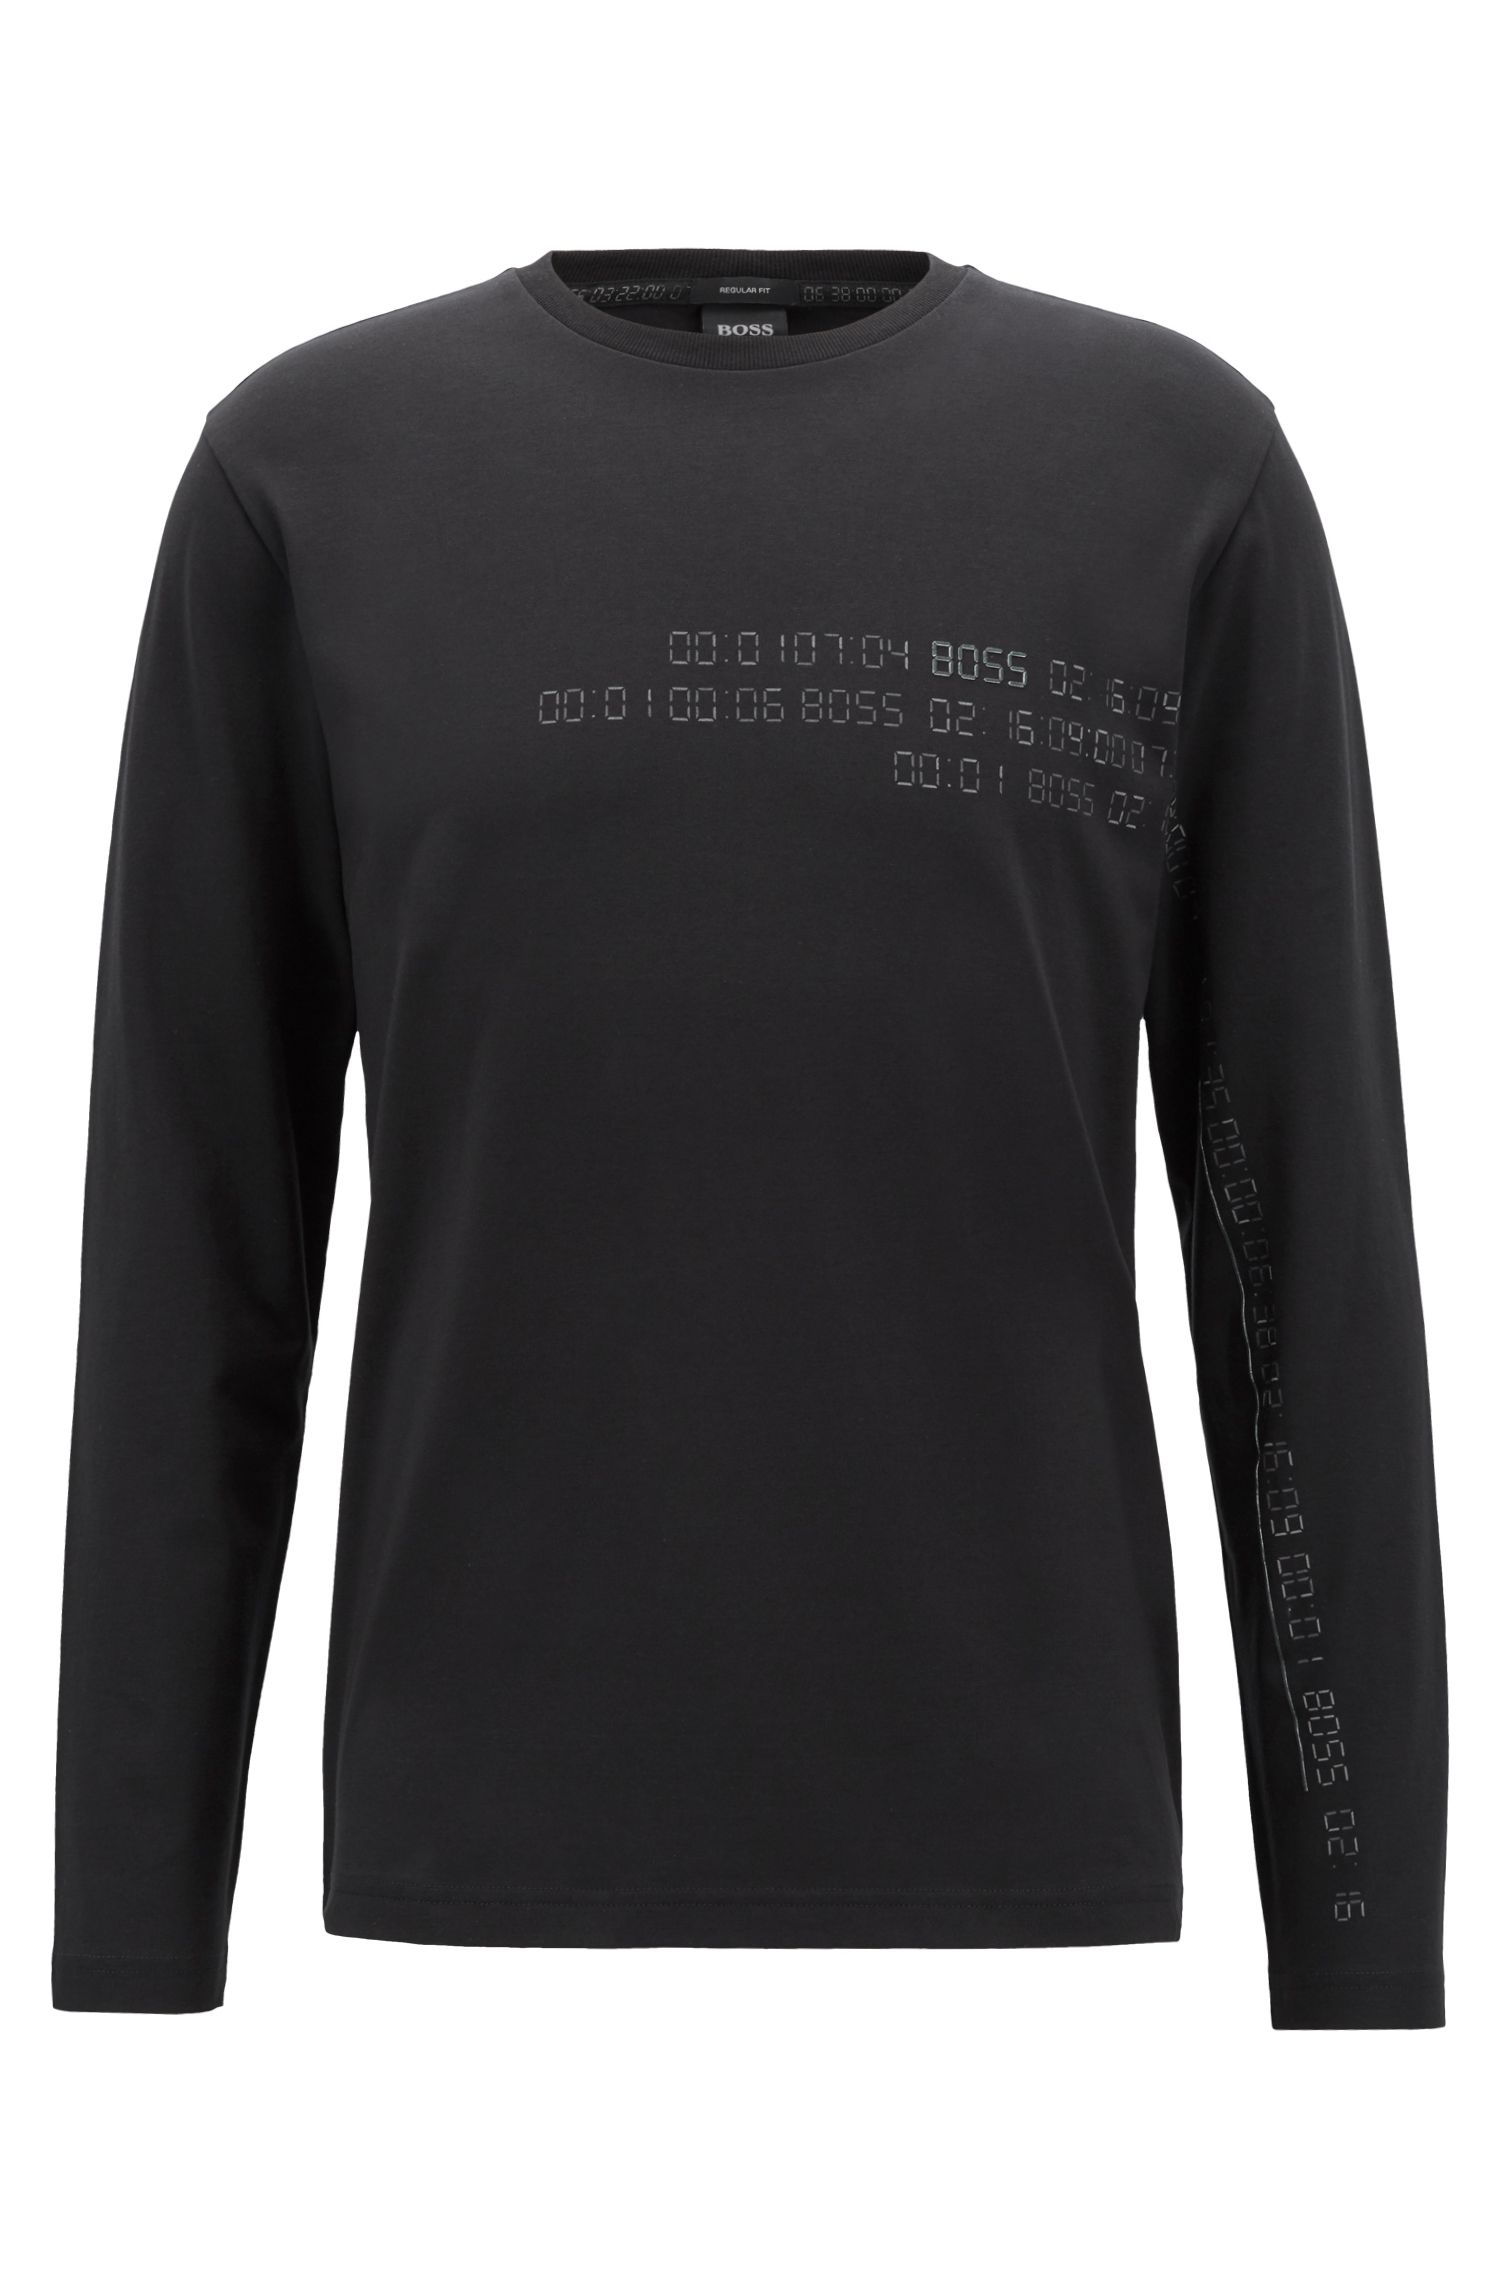 Long-sleeved T-shirt in stretch cotton with reflective print, Black